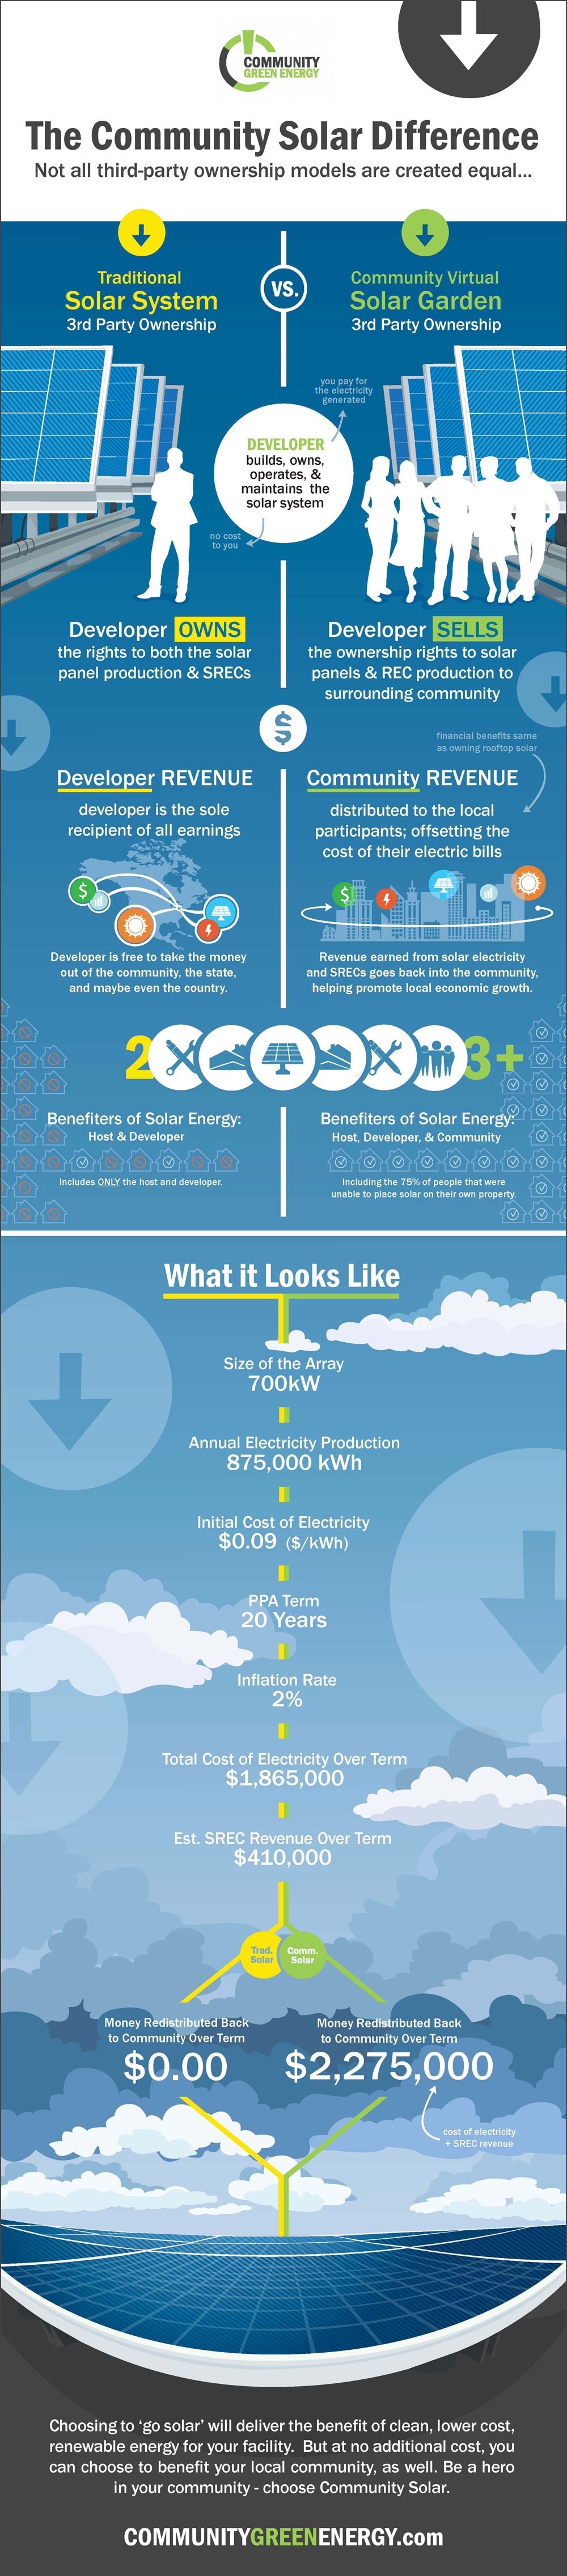 infographic-solardifference